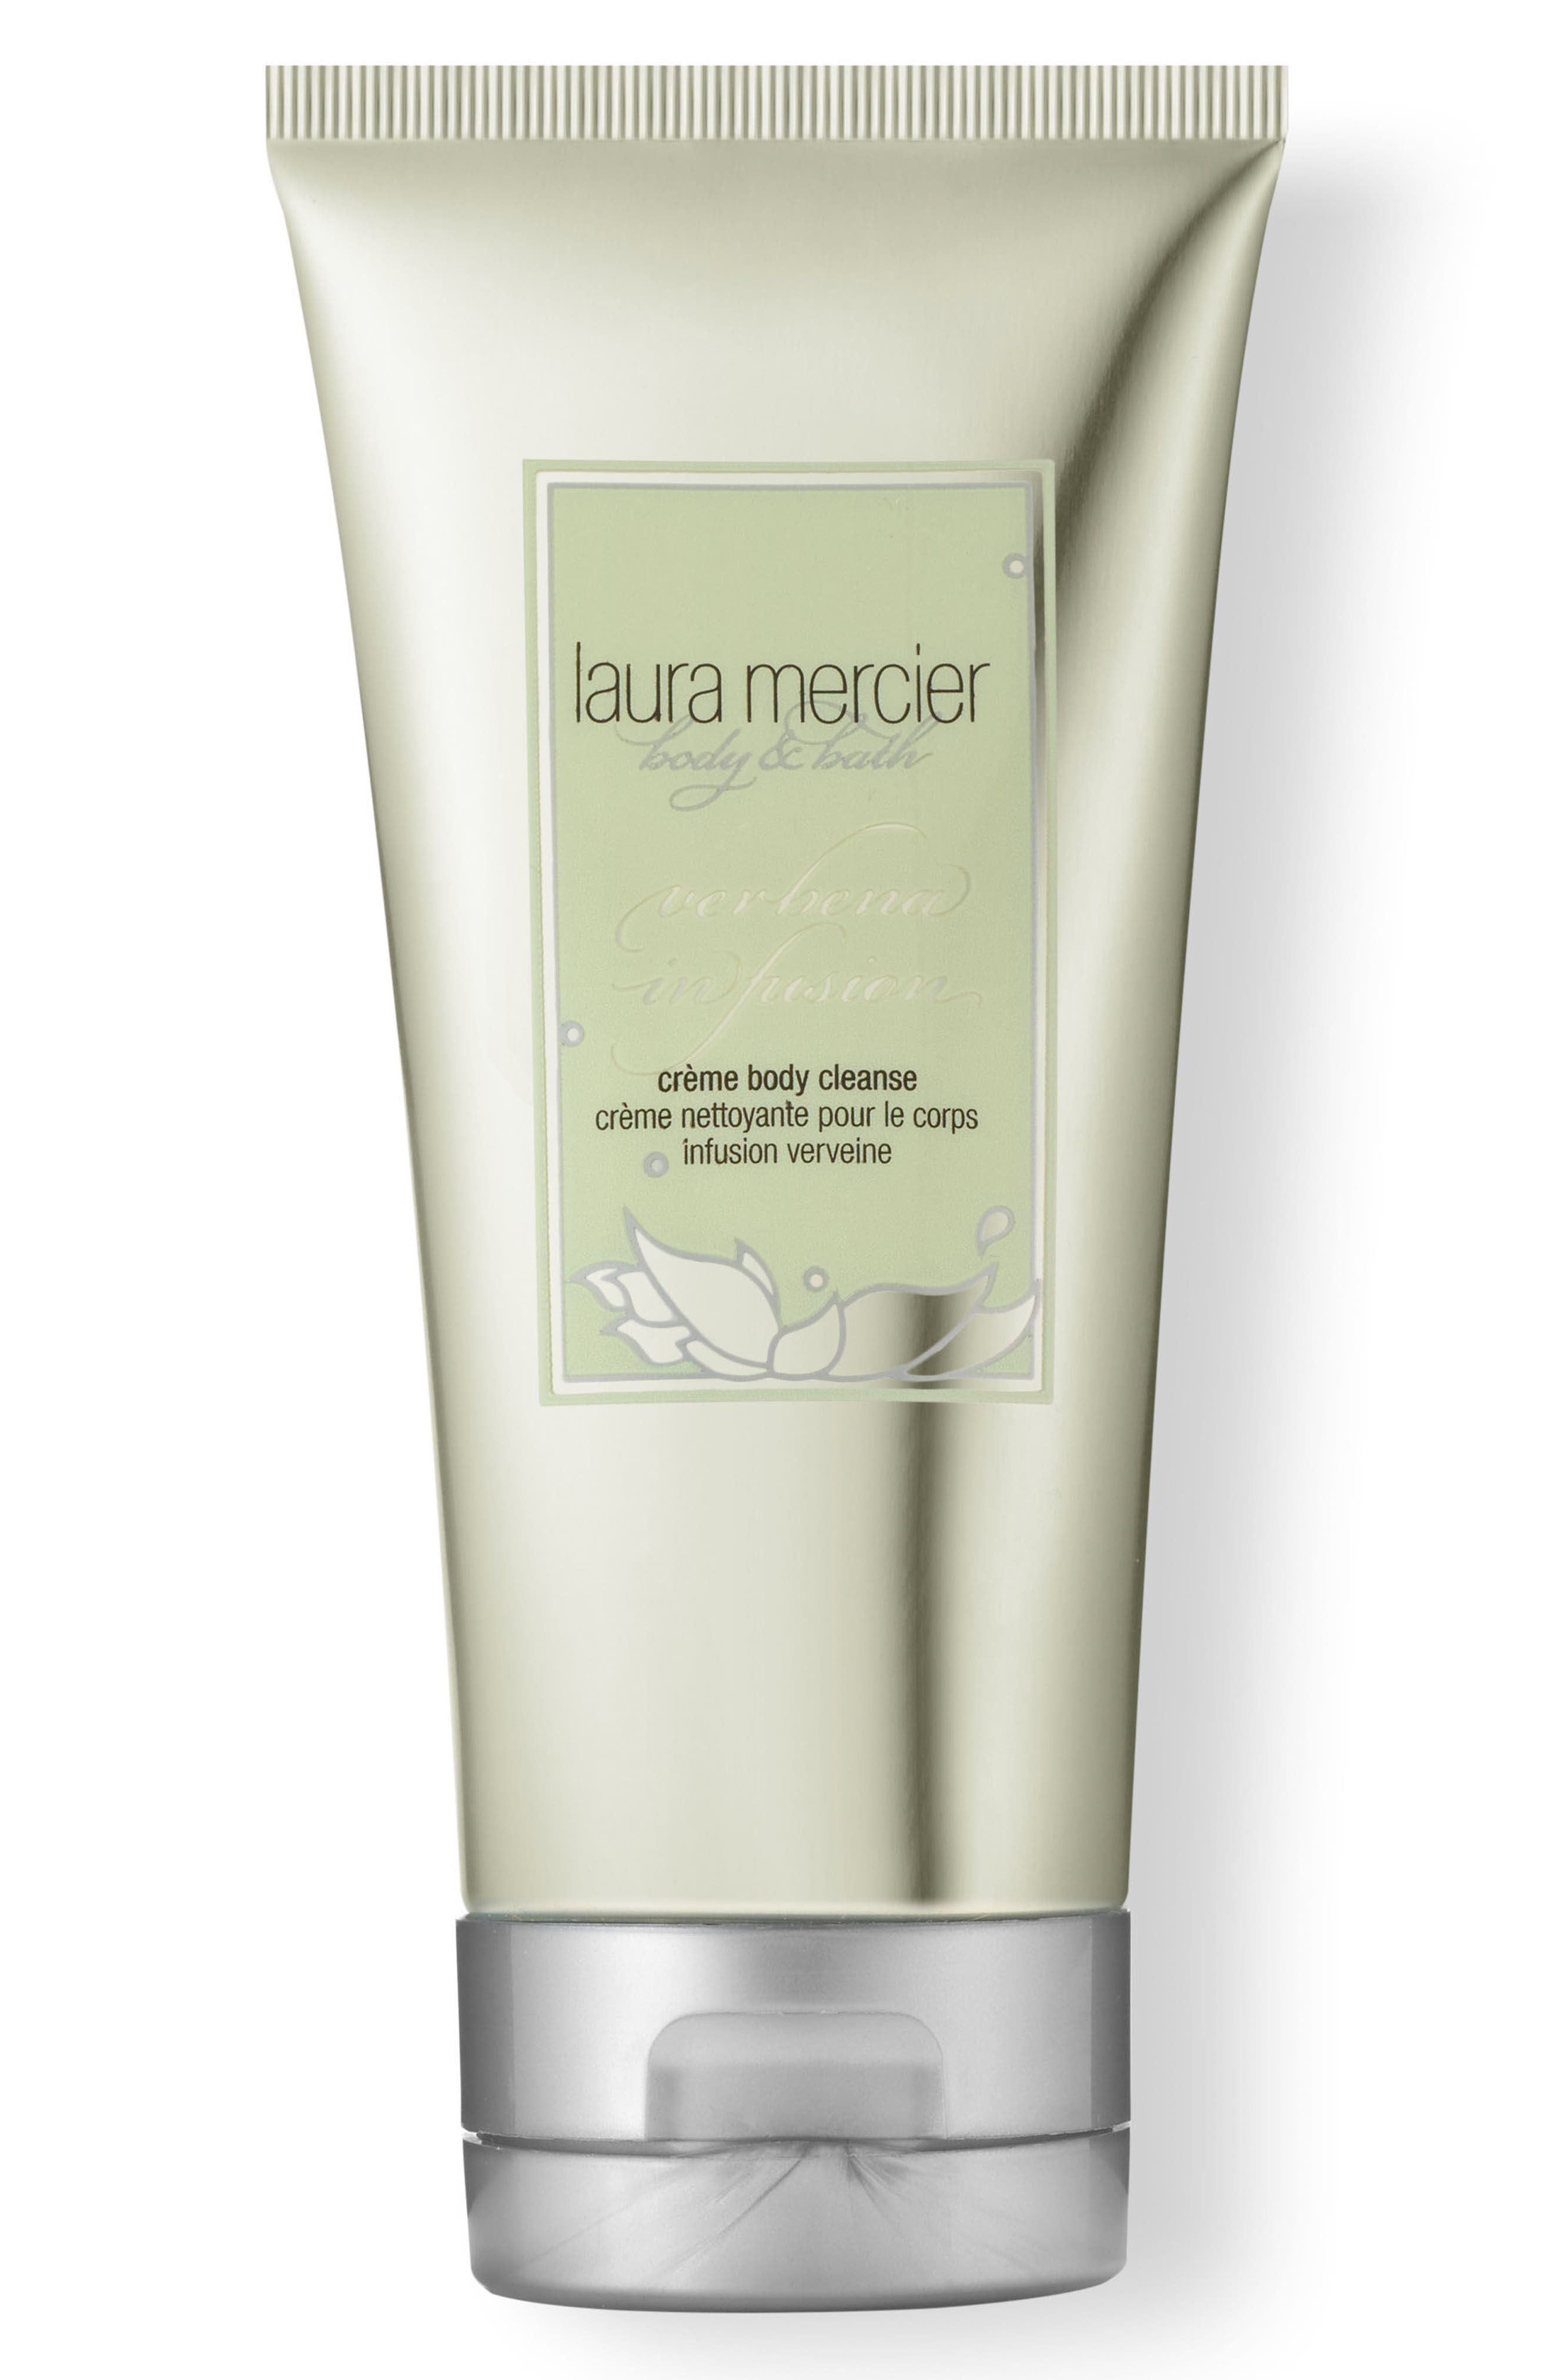 Alternate Image 1 Selected - Laura Mercier 'Verbena Infusion' Creme Body Cleanse